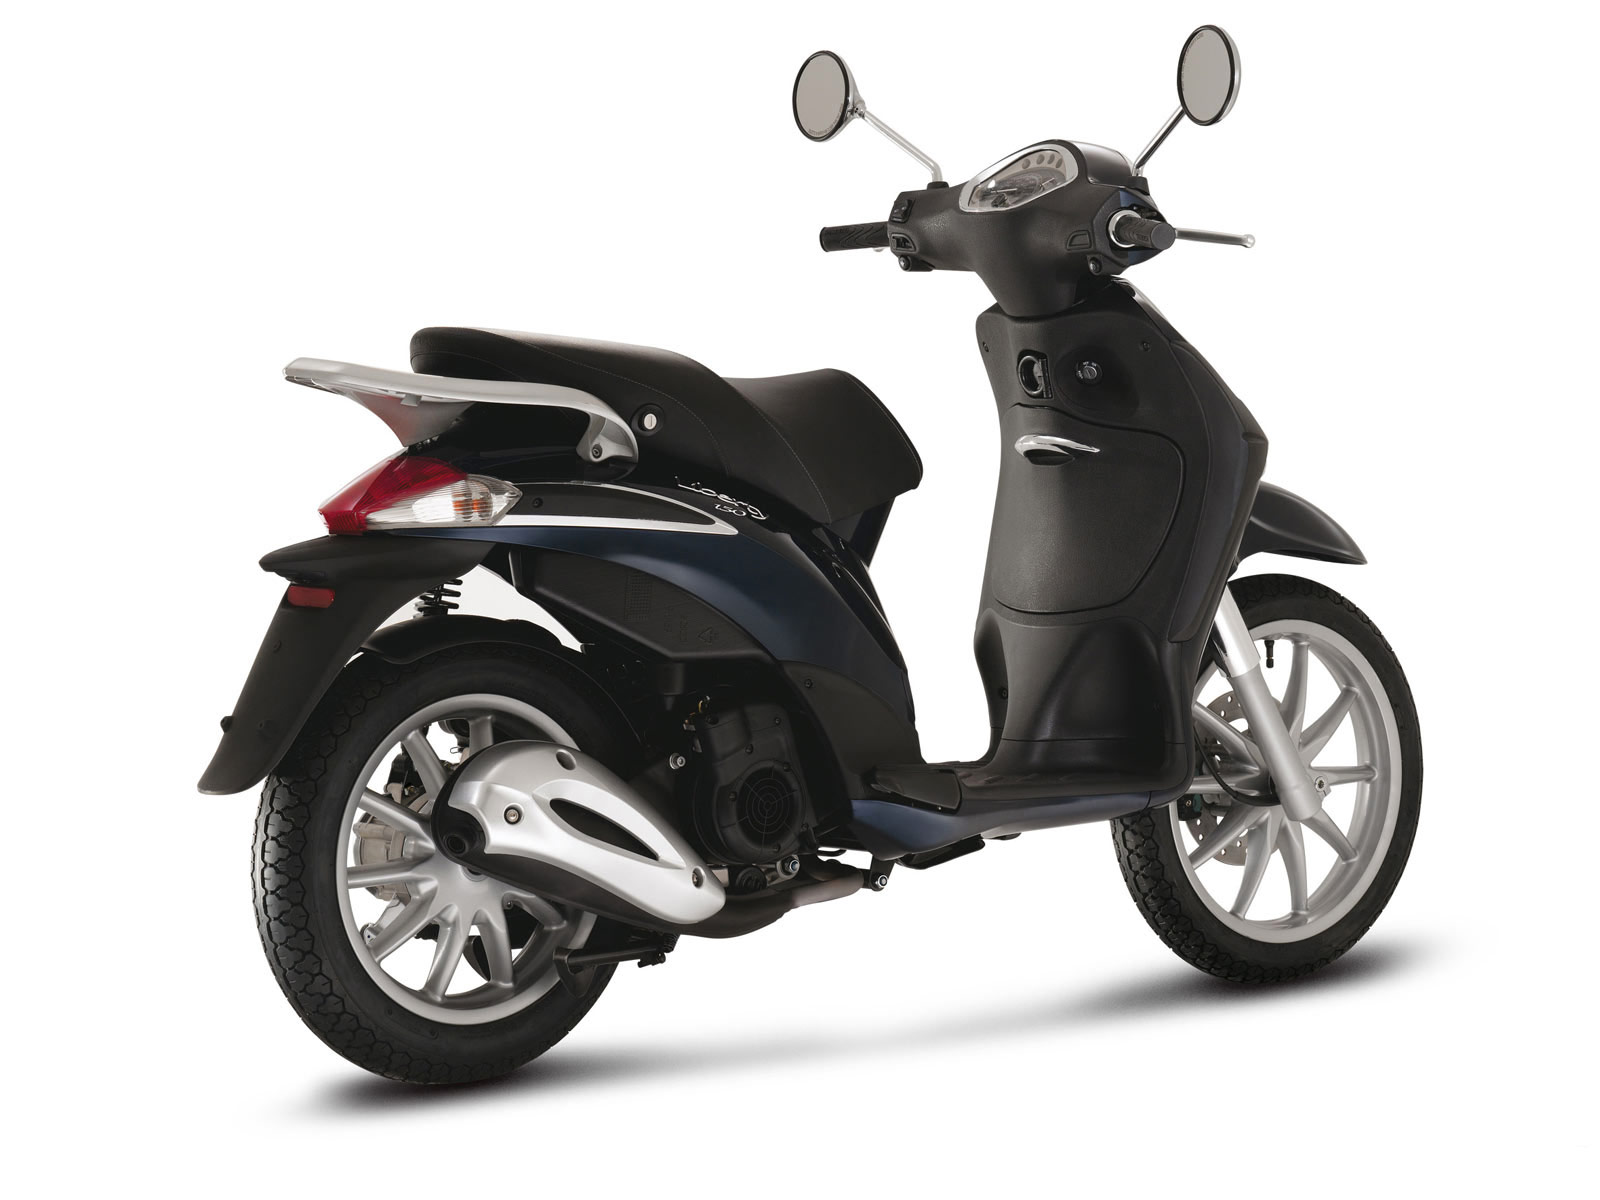 2009 piaggio liberty 150 scooter pictures accident. Black Bedroom Furniture Sets. Home Design Ideas